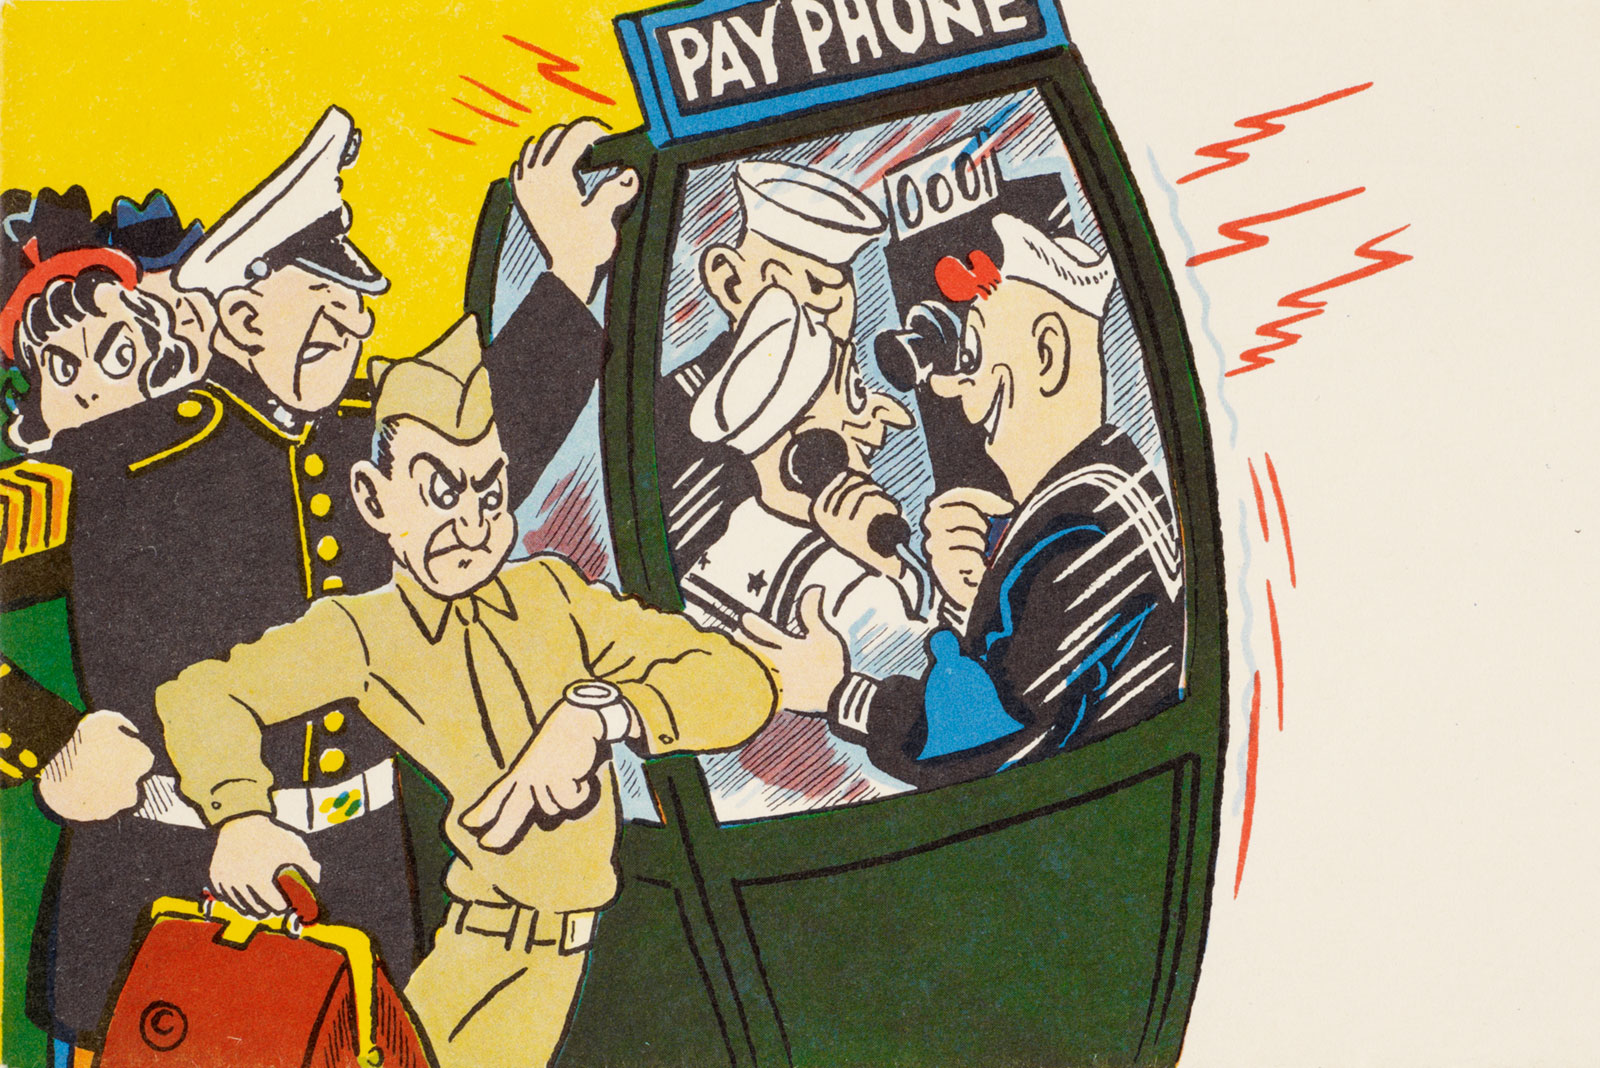 Envelope showing people fighting over a payphone